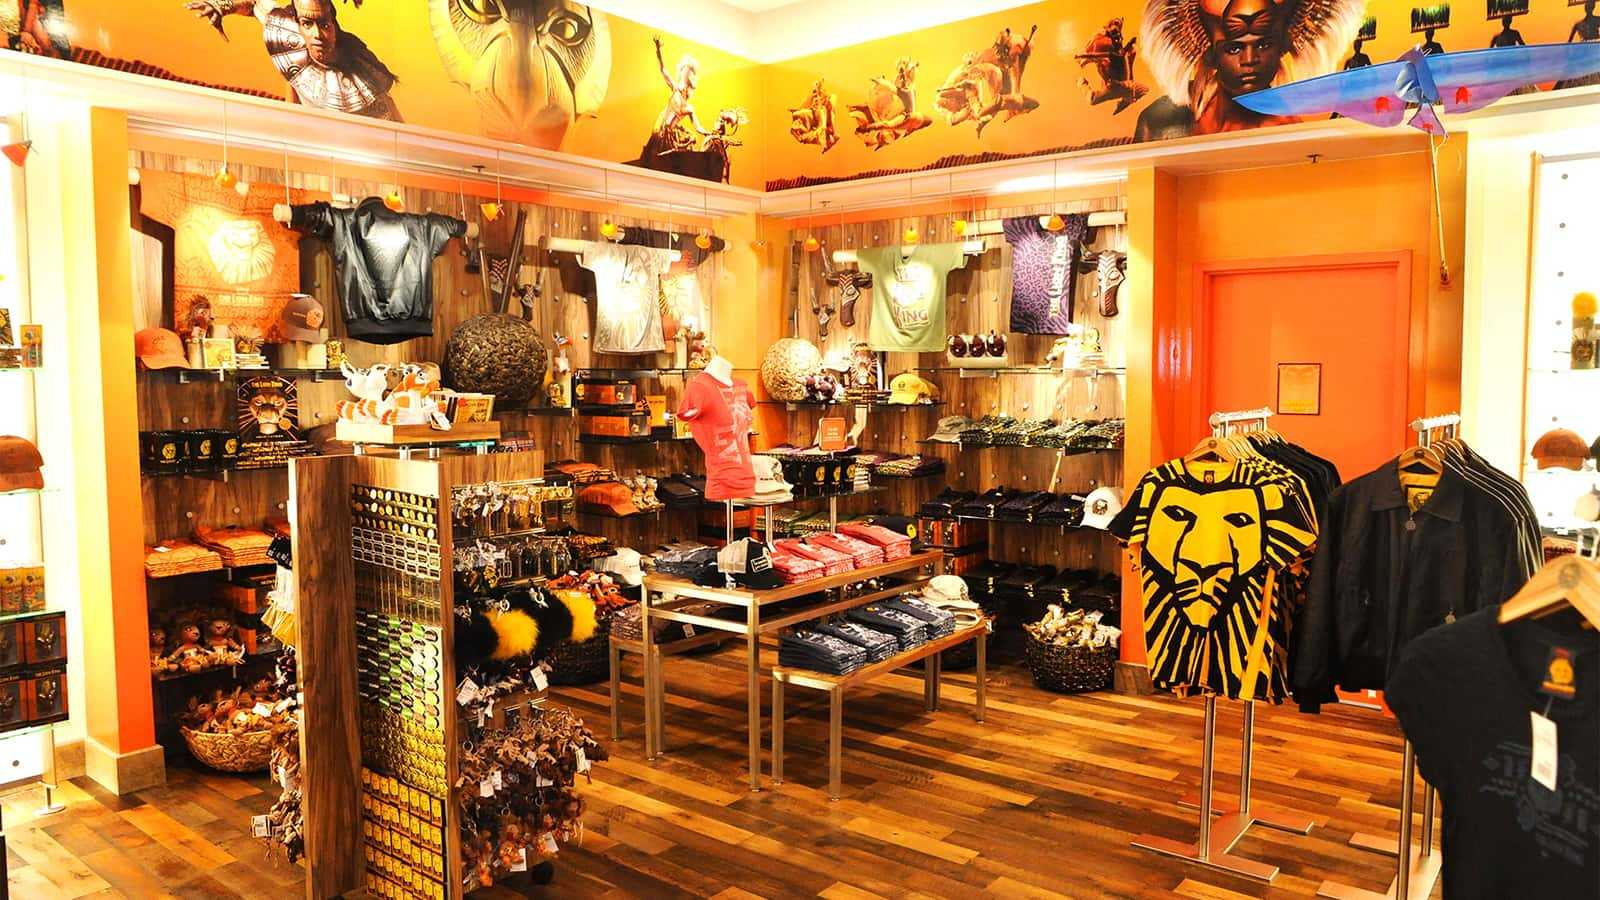 Retail fixtures of the Mandalay Bay Lion King Theater Store.